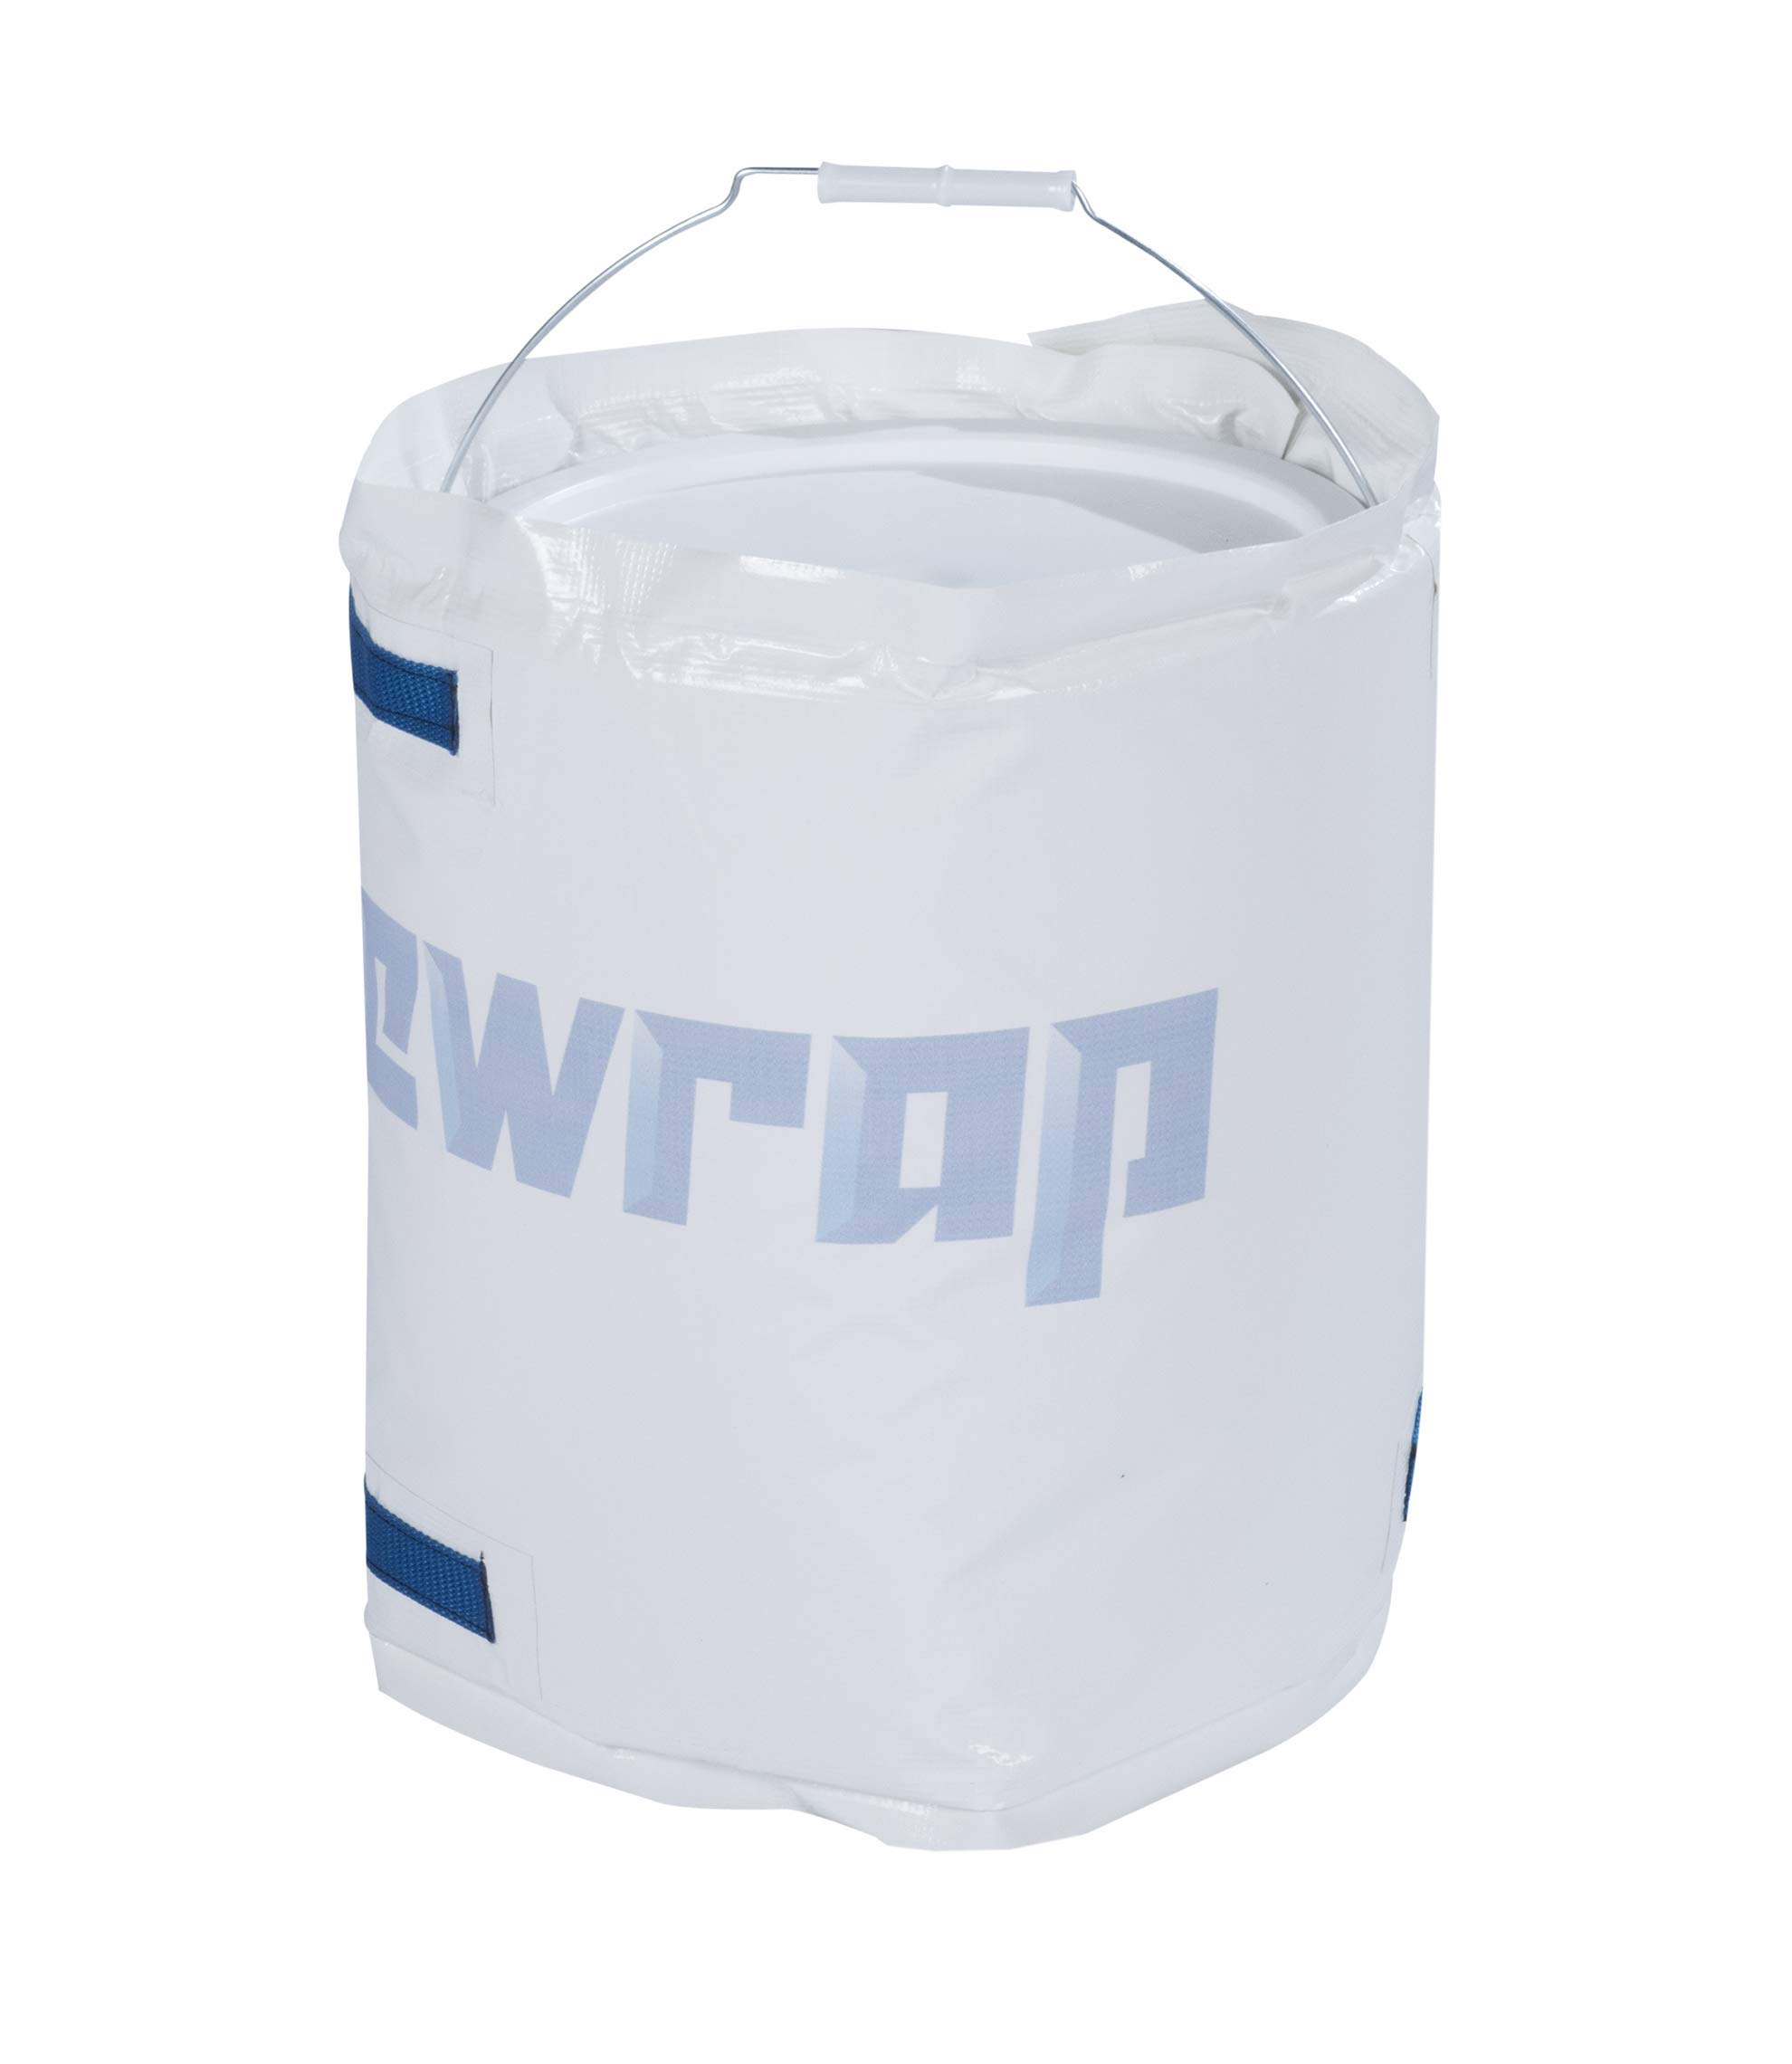 Powerblanket PBICE05IP Ice Pack Pail Cooling Blanket, Fits 5-Gallon Bucket, 8 Ice Packs Included